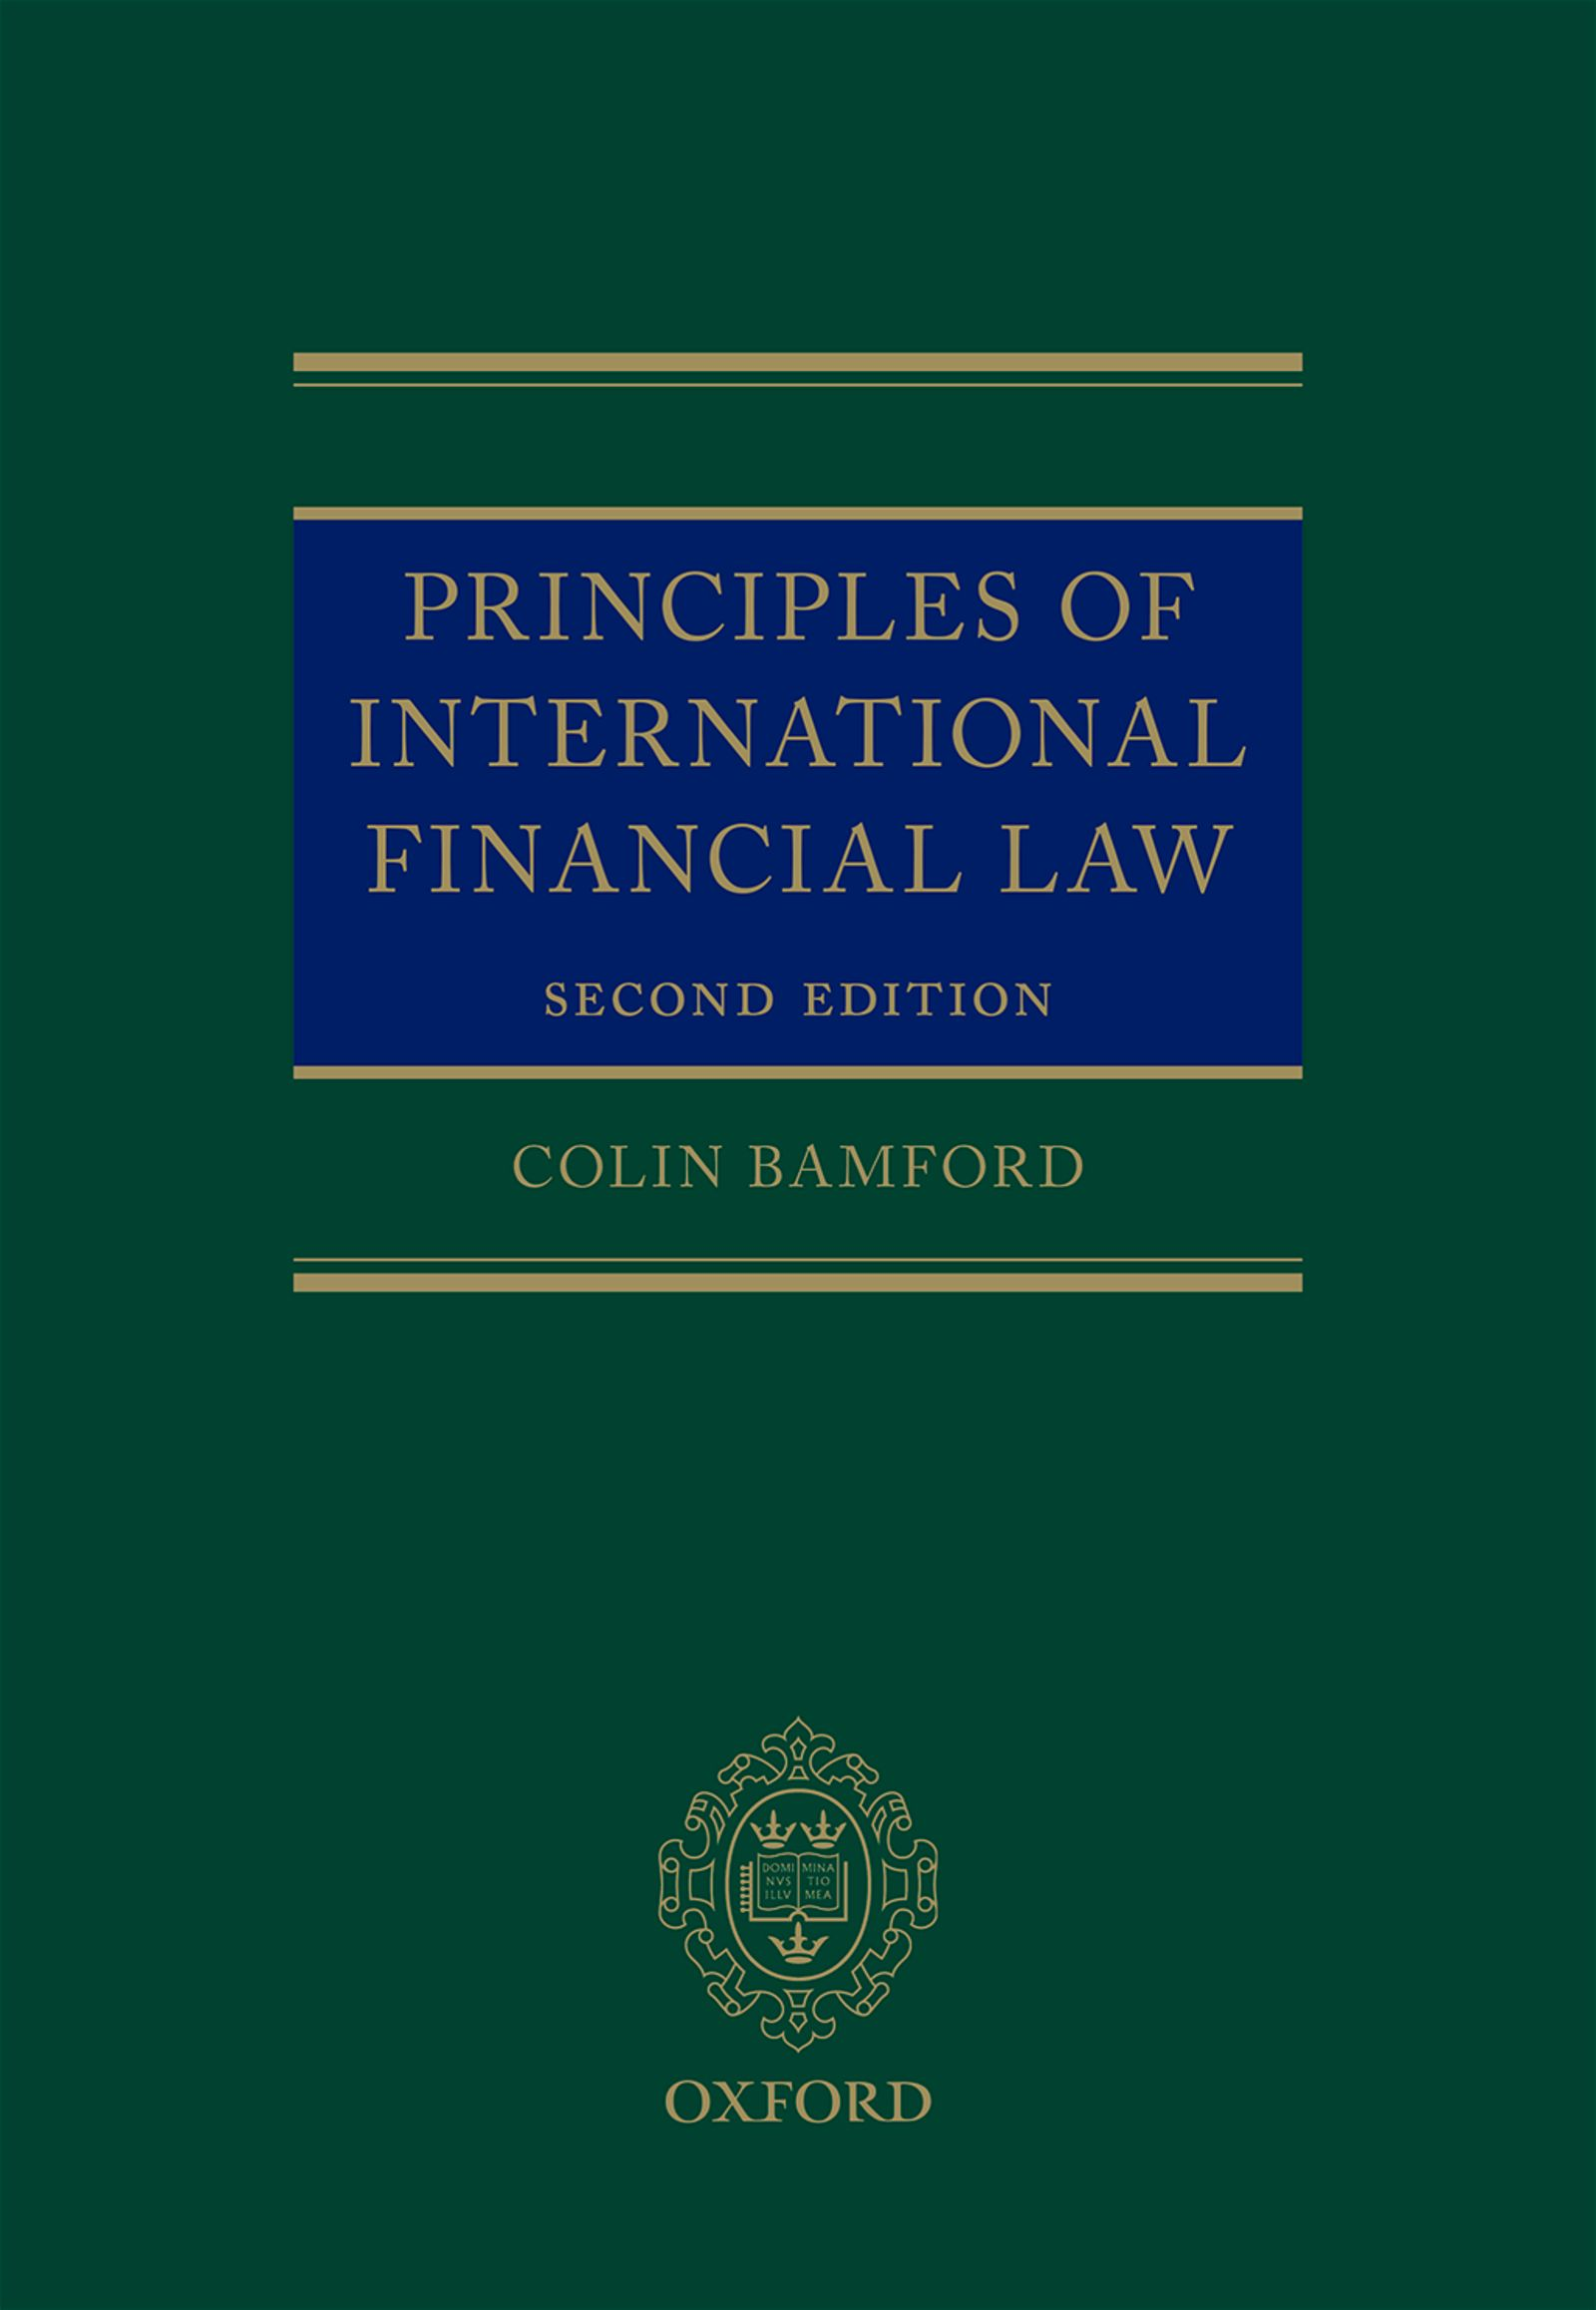 Download Ebook Principles of International Financial Law (2nd ed.) by Colin Bamford Pdf